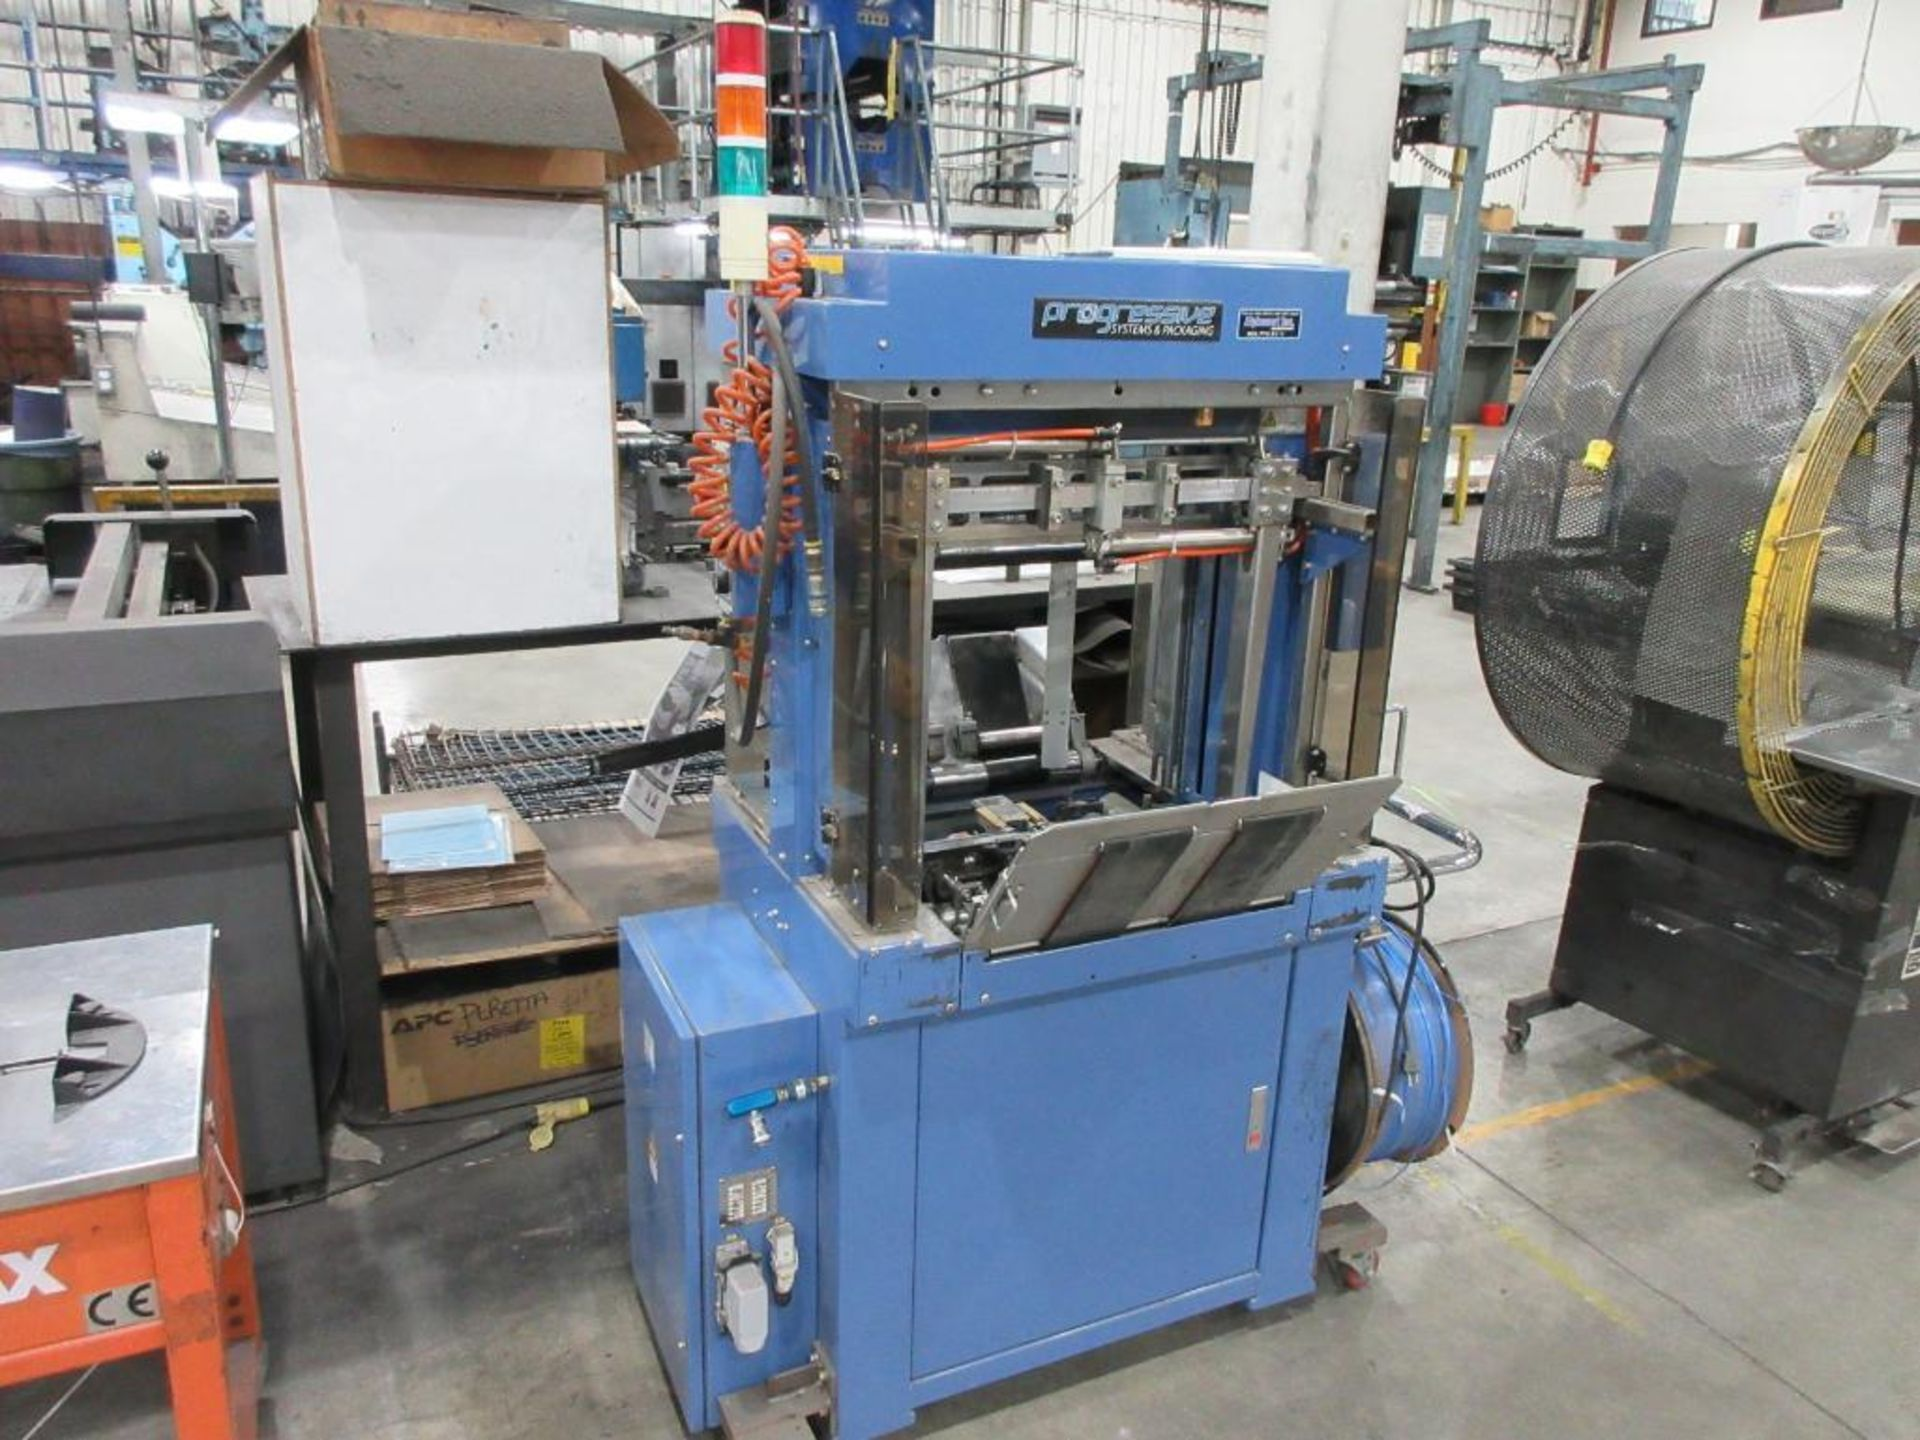 2014 Progressive Systems & Packaging stacker model TP-701N-1, sn 141116801 [Exclusive rigging fee of - Image 2 of 3